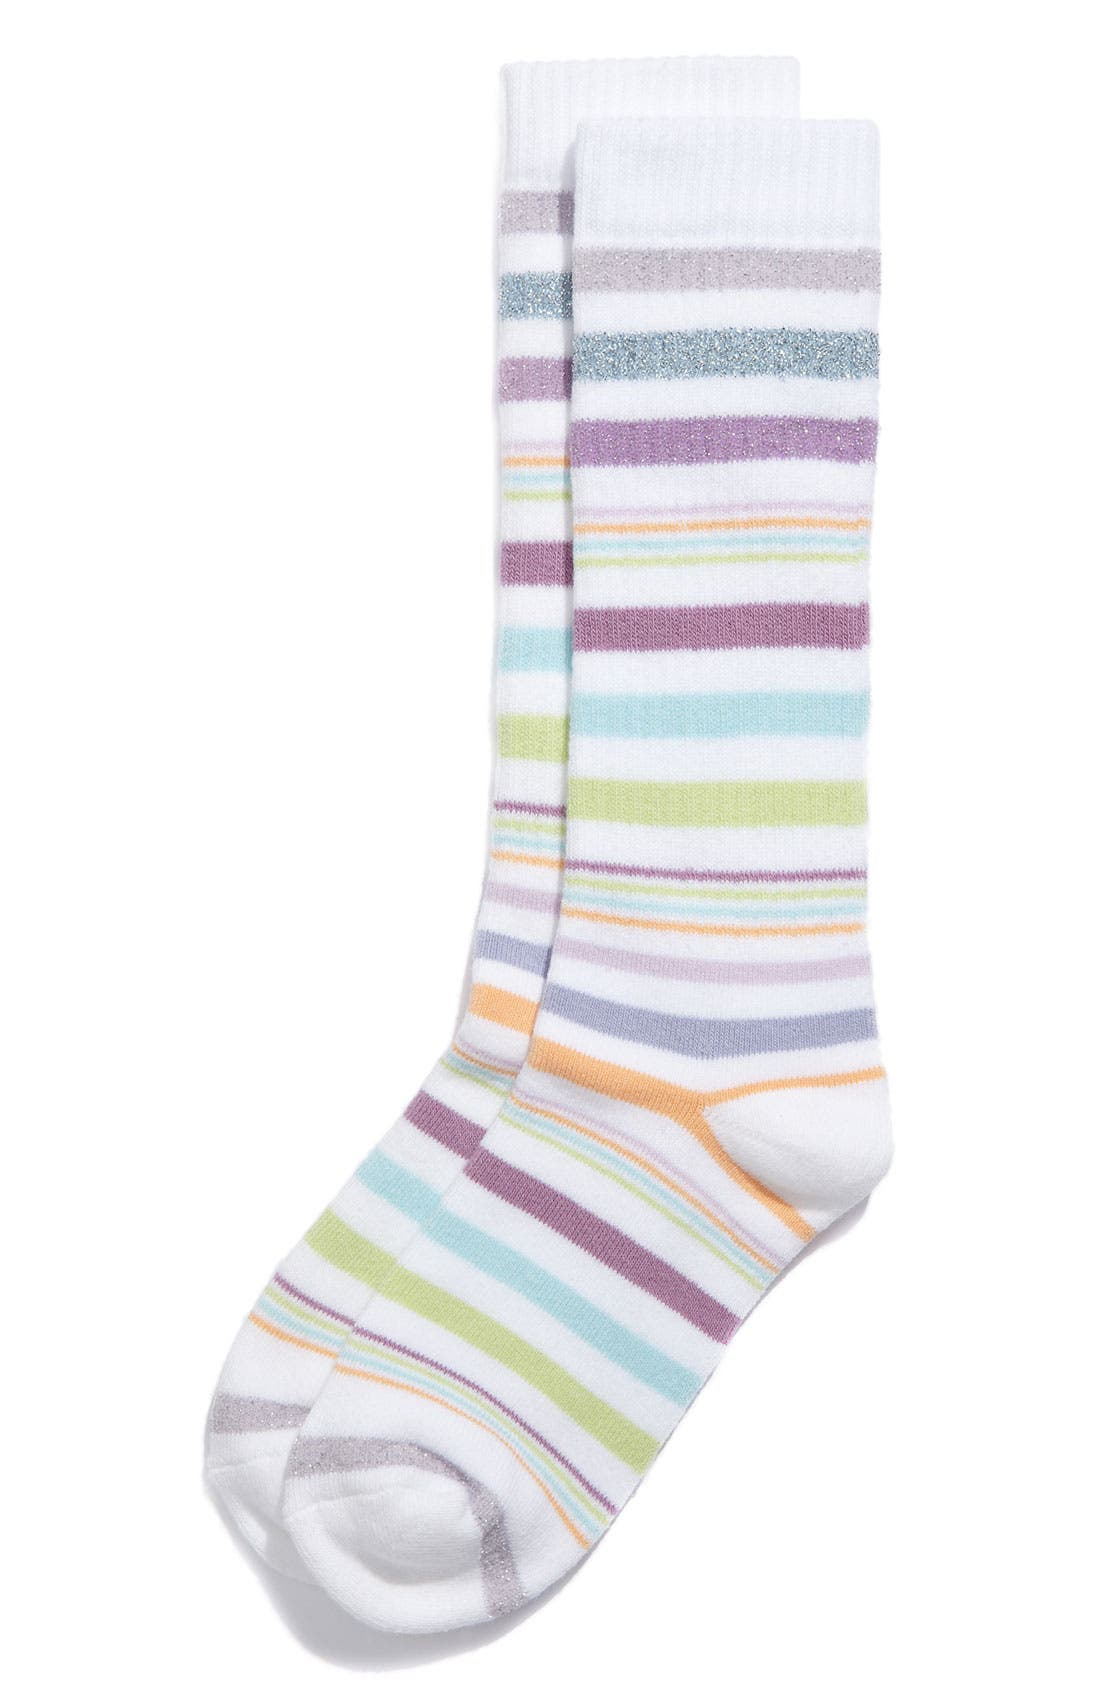 Alternate Image 1 Selected - Nordstrom 'Sporty Stripe' Knee High Socks (Toddler, Little Girls & Big Girls)